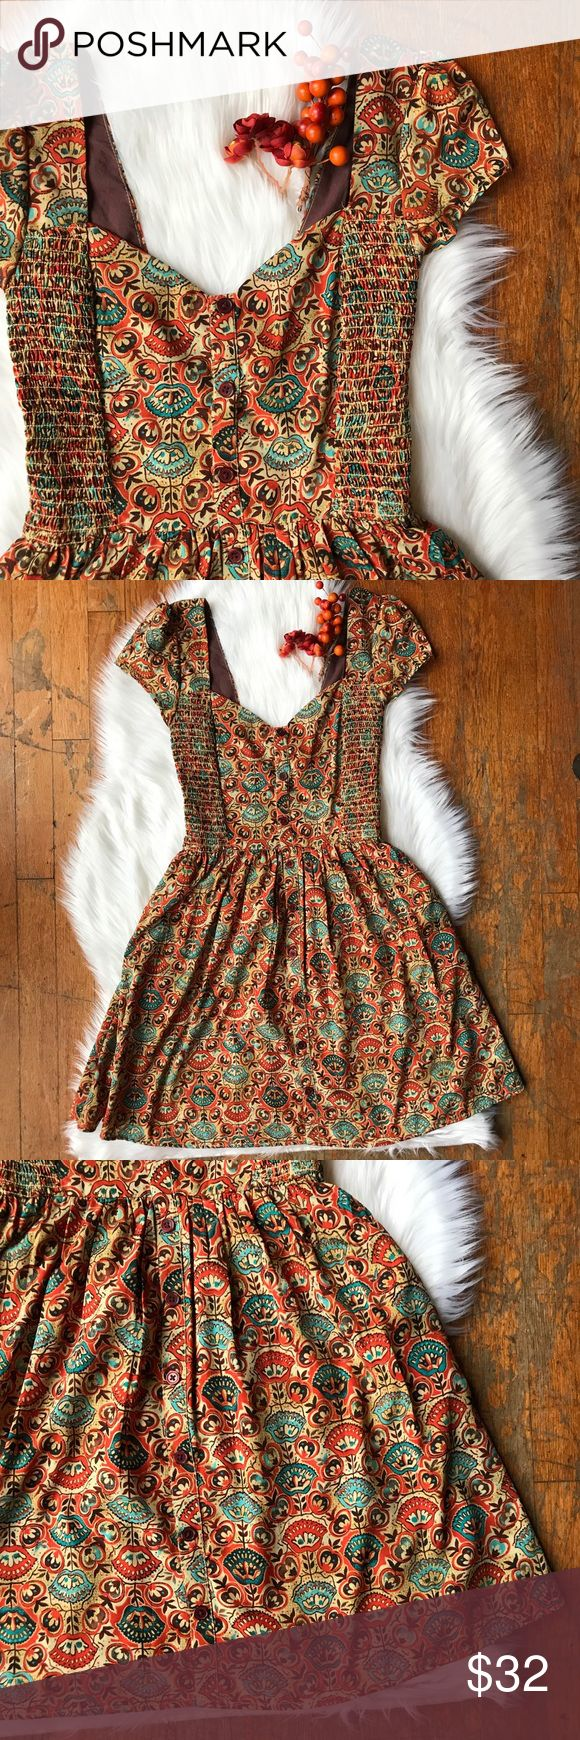 """Band of Gypsies Button Up Boho Festival Dress Adorable dress by Band of Gypsies, absolutely perfect for festival season.  Ruched bodice with buttons all the way down the front and a sweetheart neckline with cap sleeves. Retro floral pattern and circle skirt. Plenty of stretch in the bodice. 100% polyester outer, 100% cotton lining.   Laid flat: 13"""" pit to pit 12"""" waist 33"""" shoulder to hem (length) Band of Gypsies Dresses Mini"""